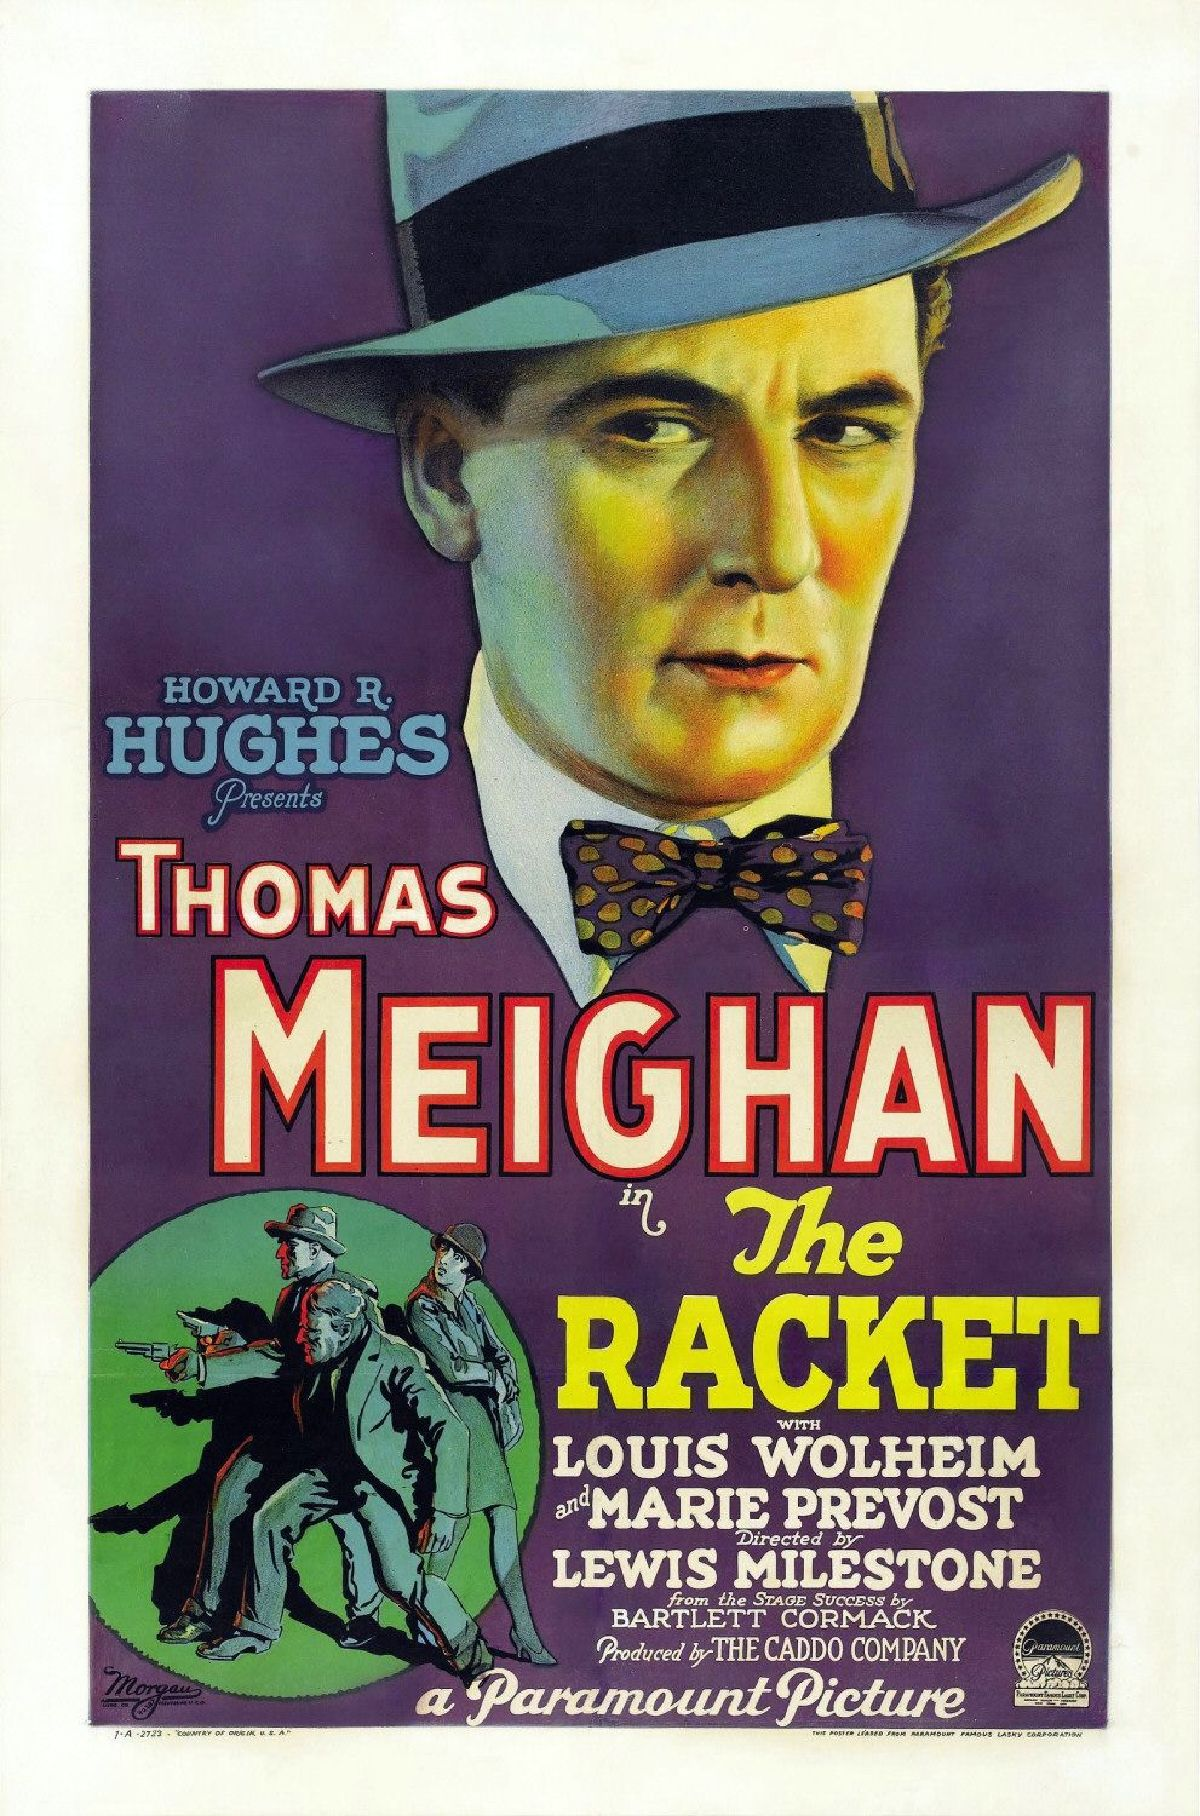 'The Racket' movie poster